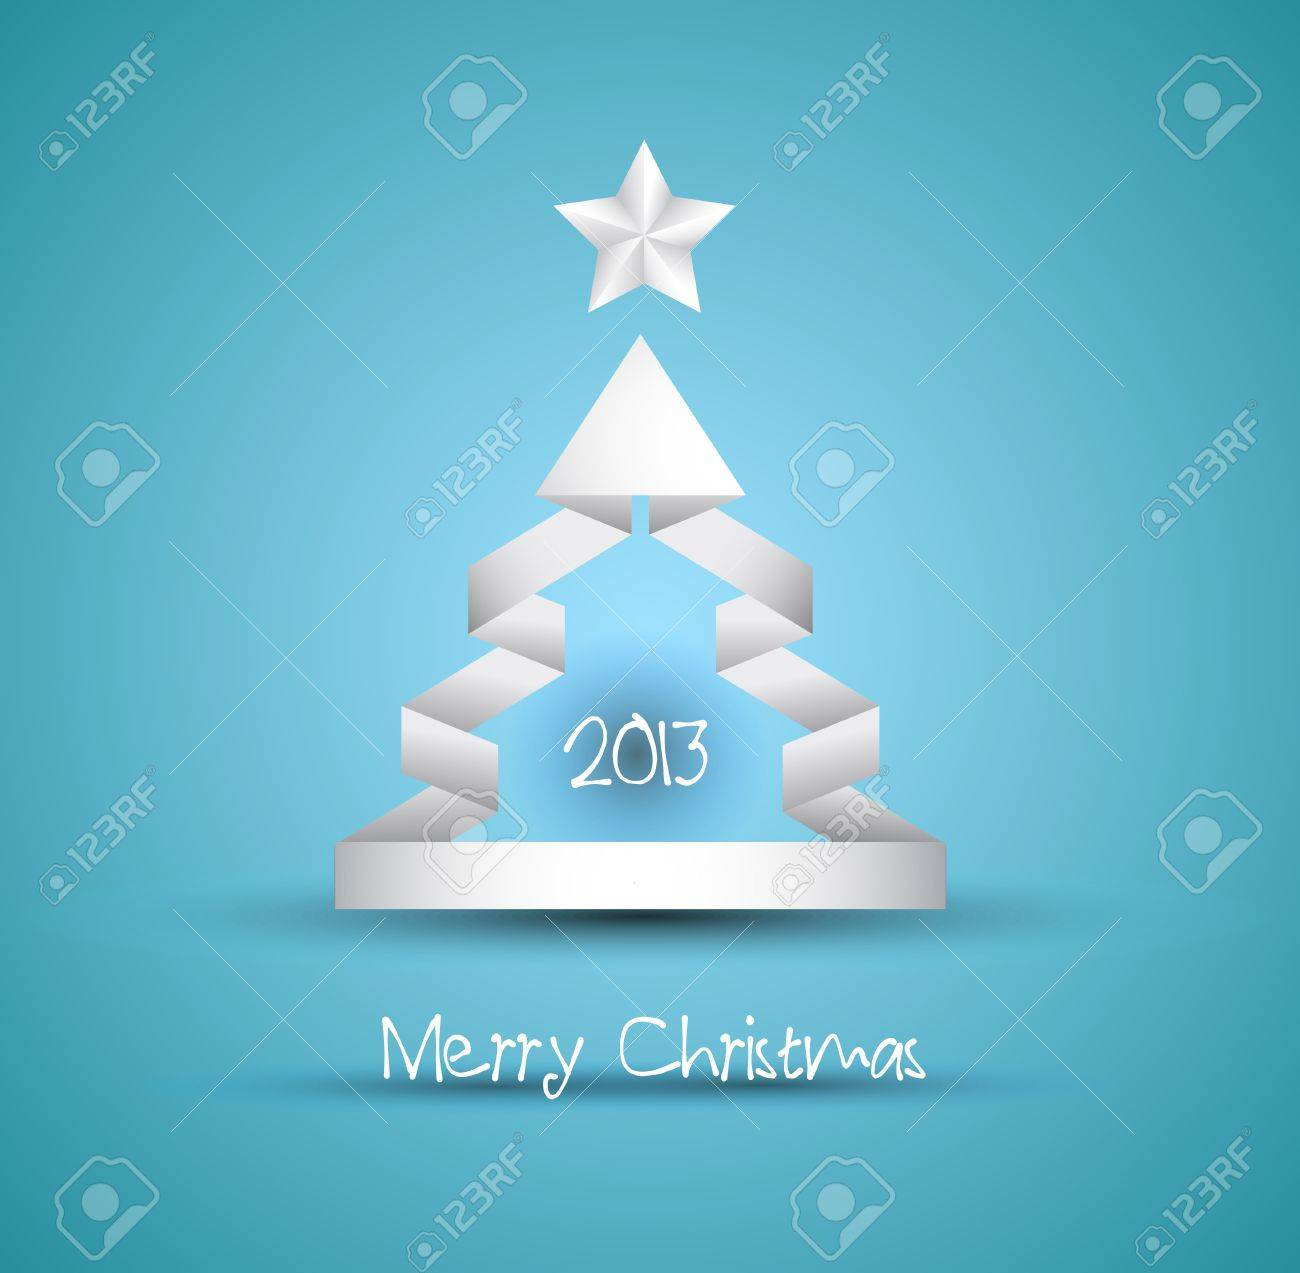 Christmas tree design with origami paper style. Ideal for simple elegant invitation flyers, poster backgrounds or gift books cover. Stock Vector - 15435054